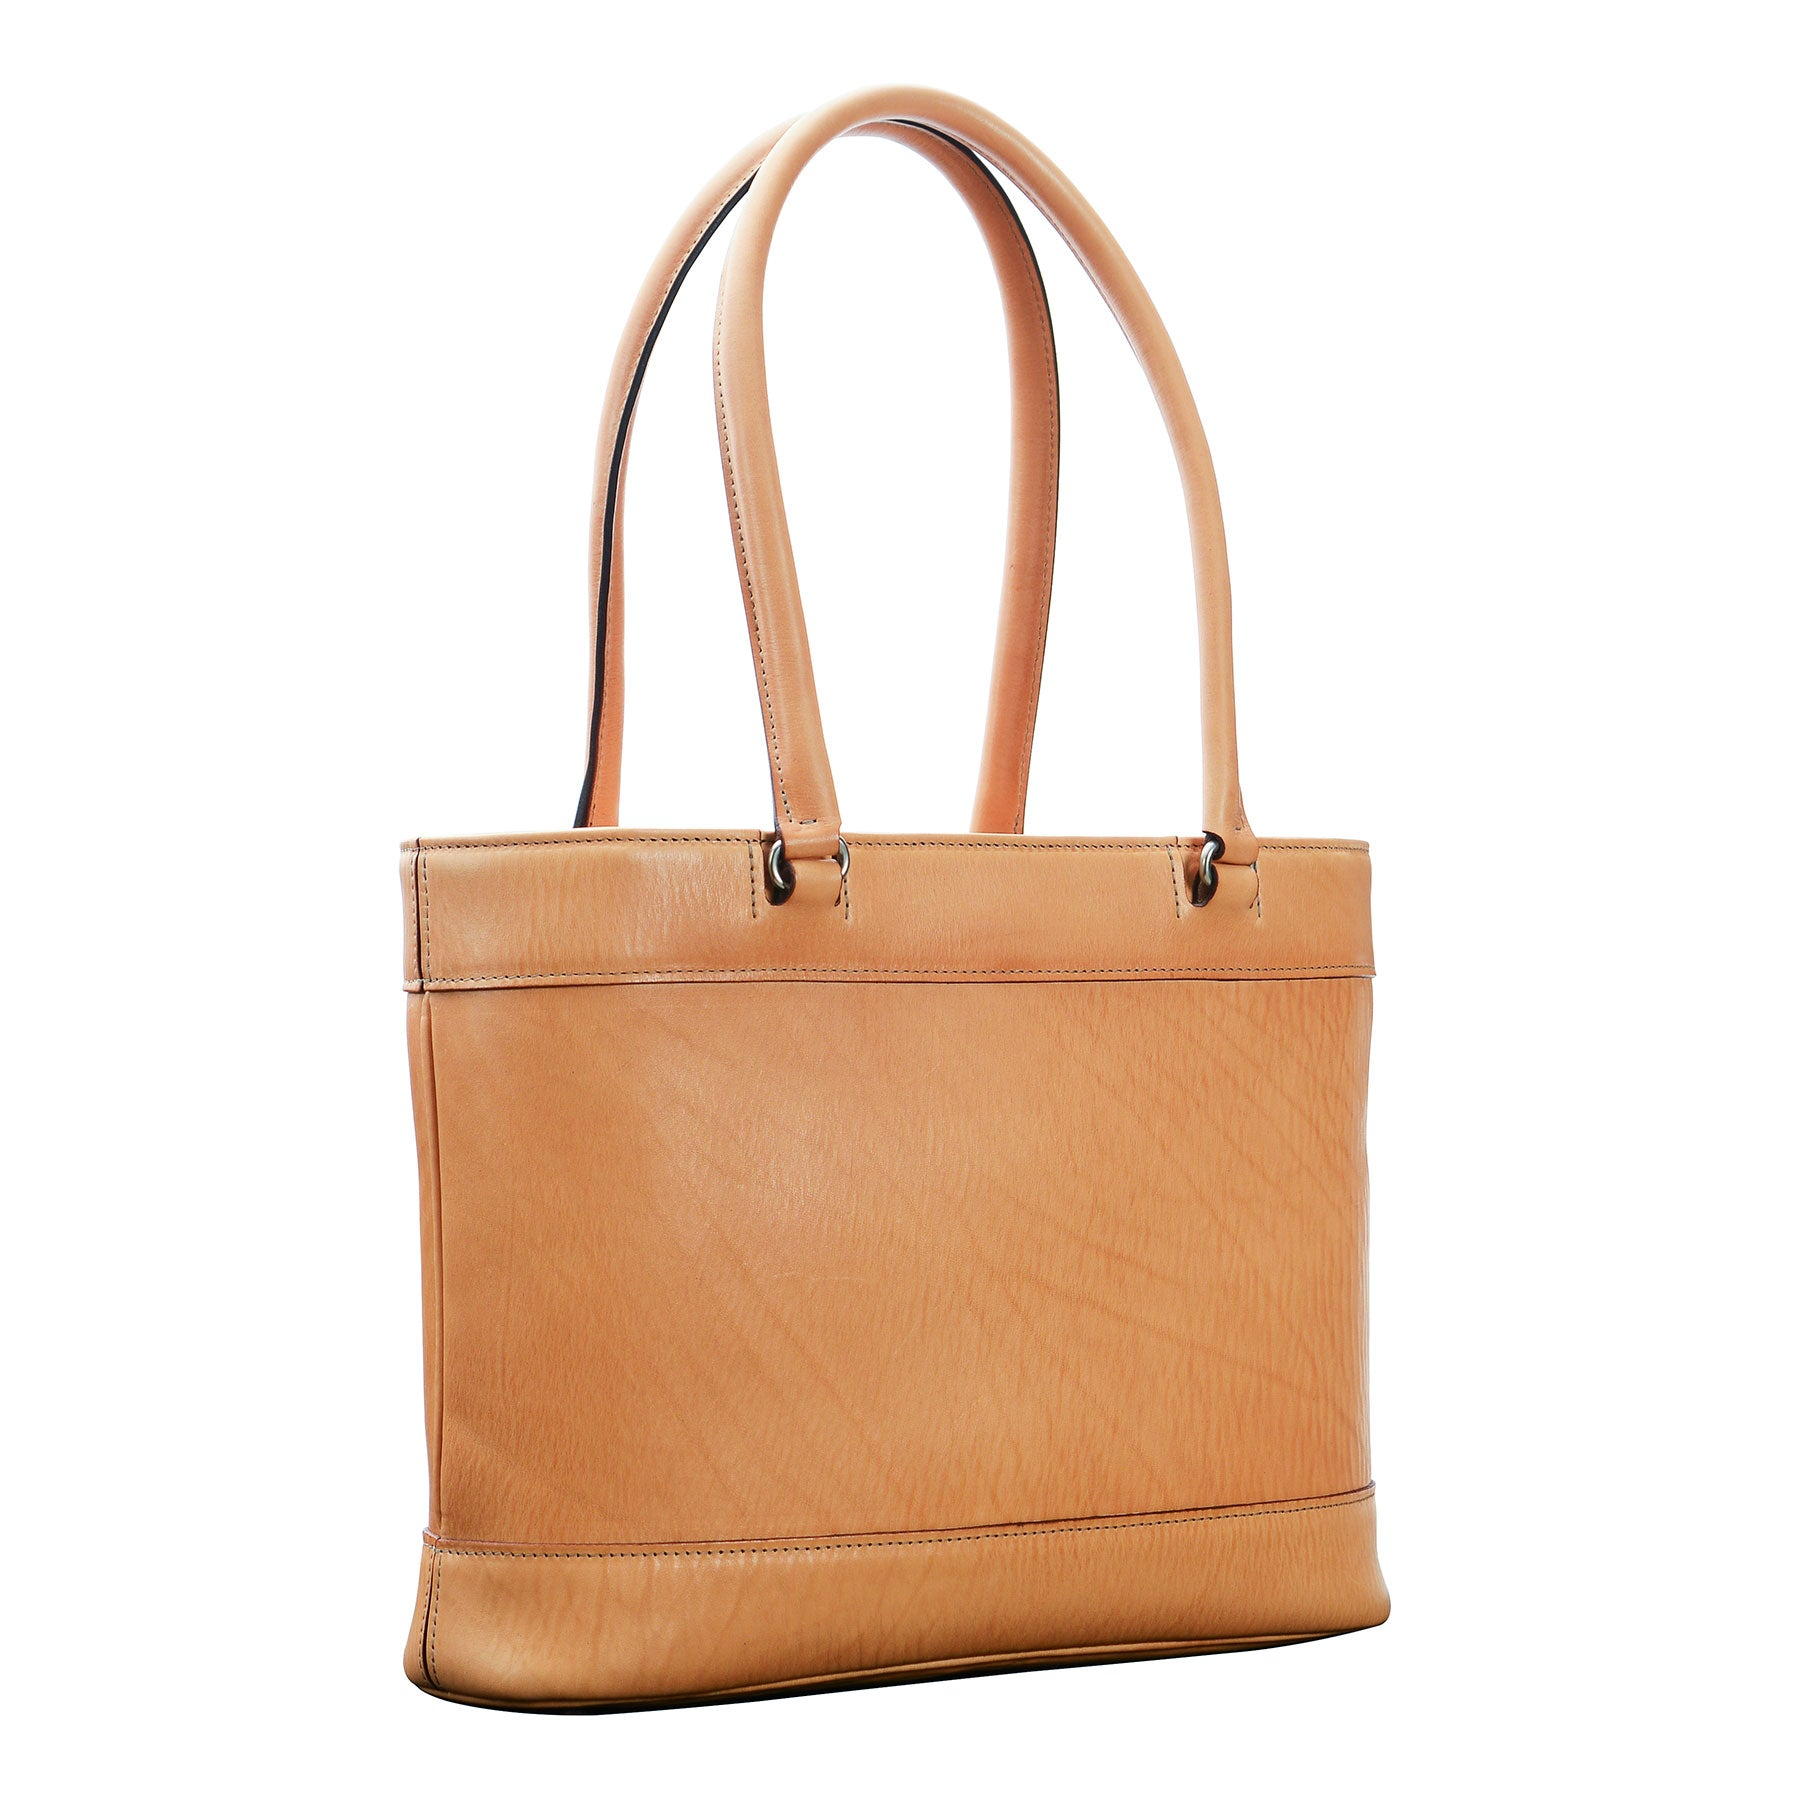 Glaser Designs Business Tote with Long Handles . Hand burnished Natural vegetable tanned leather. Solid brass hardware. Made to measure, custom sizes.